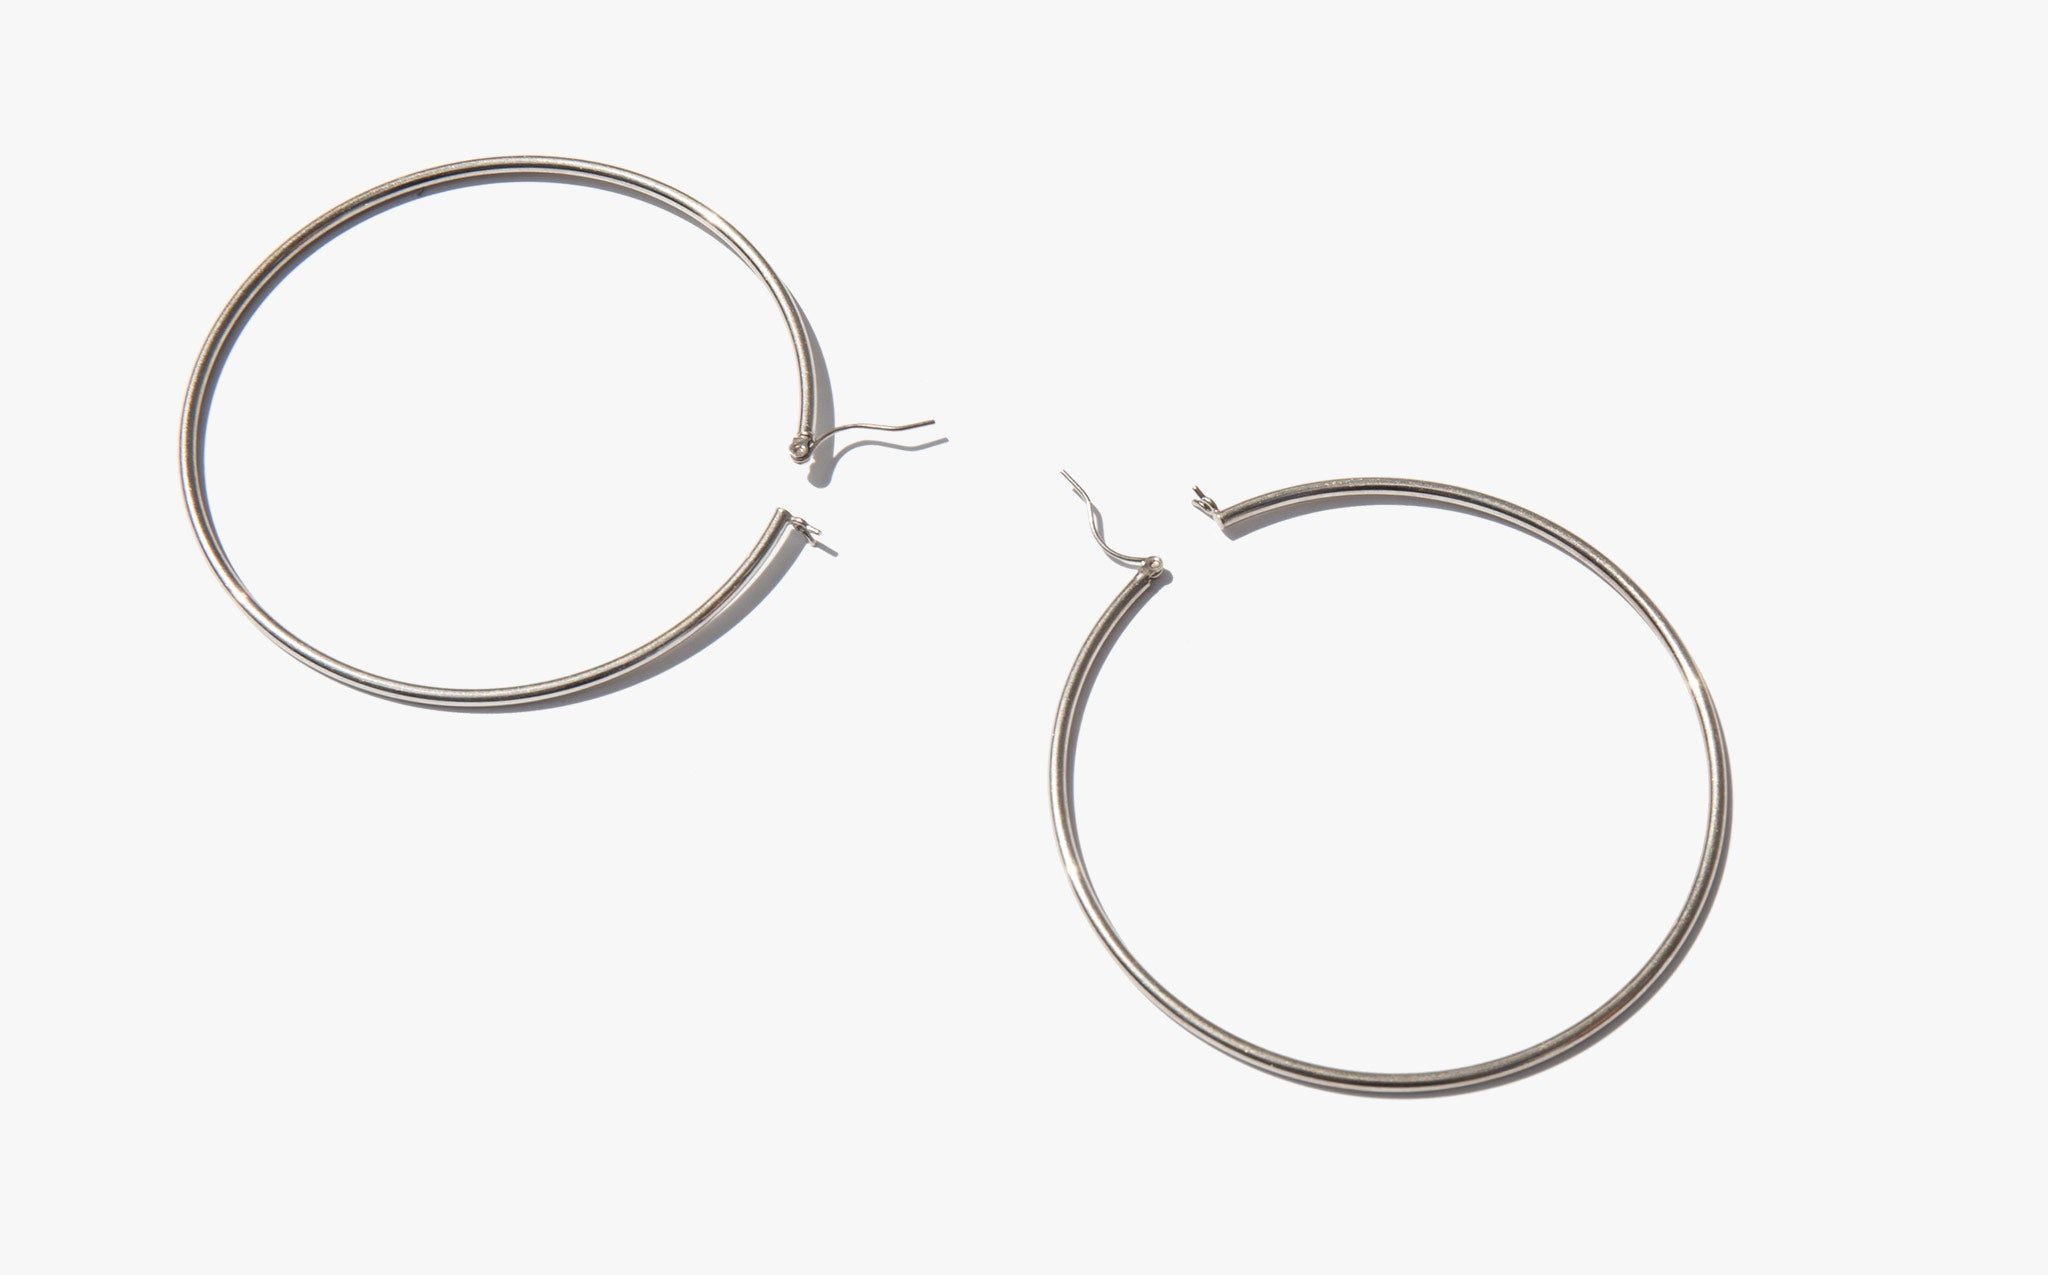 14K Juicy Hoops